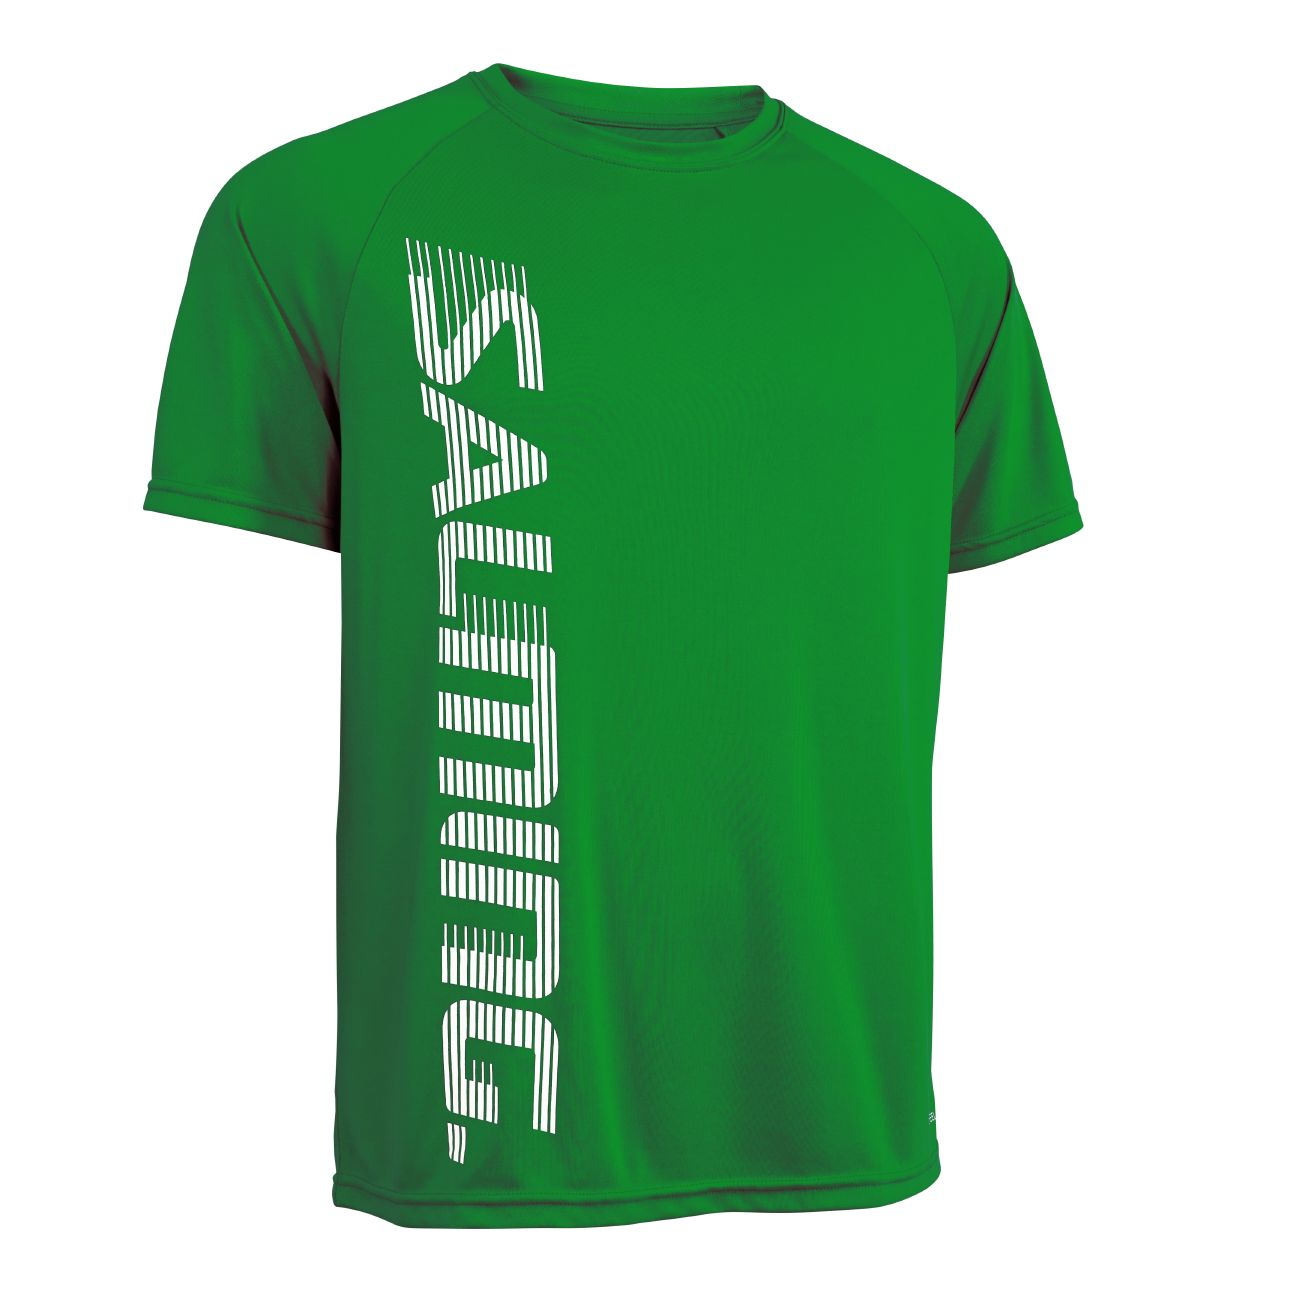 Salming Training Tee 2.0 Červená, 152